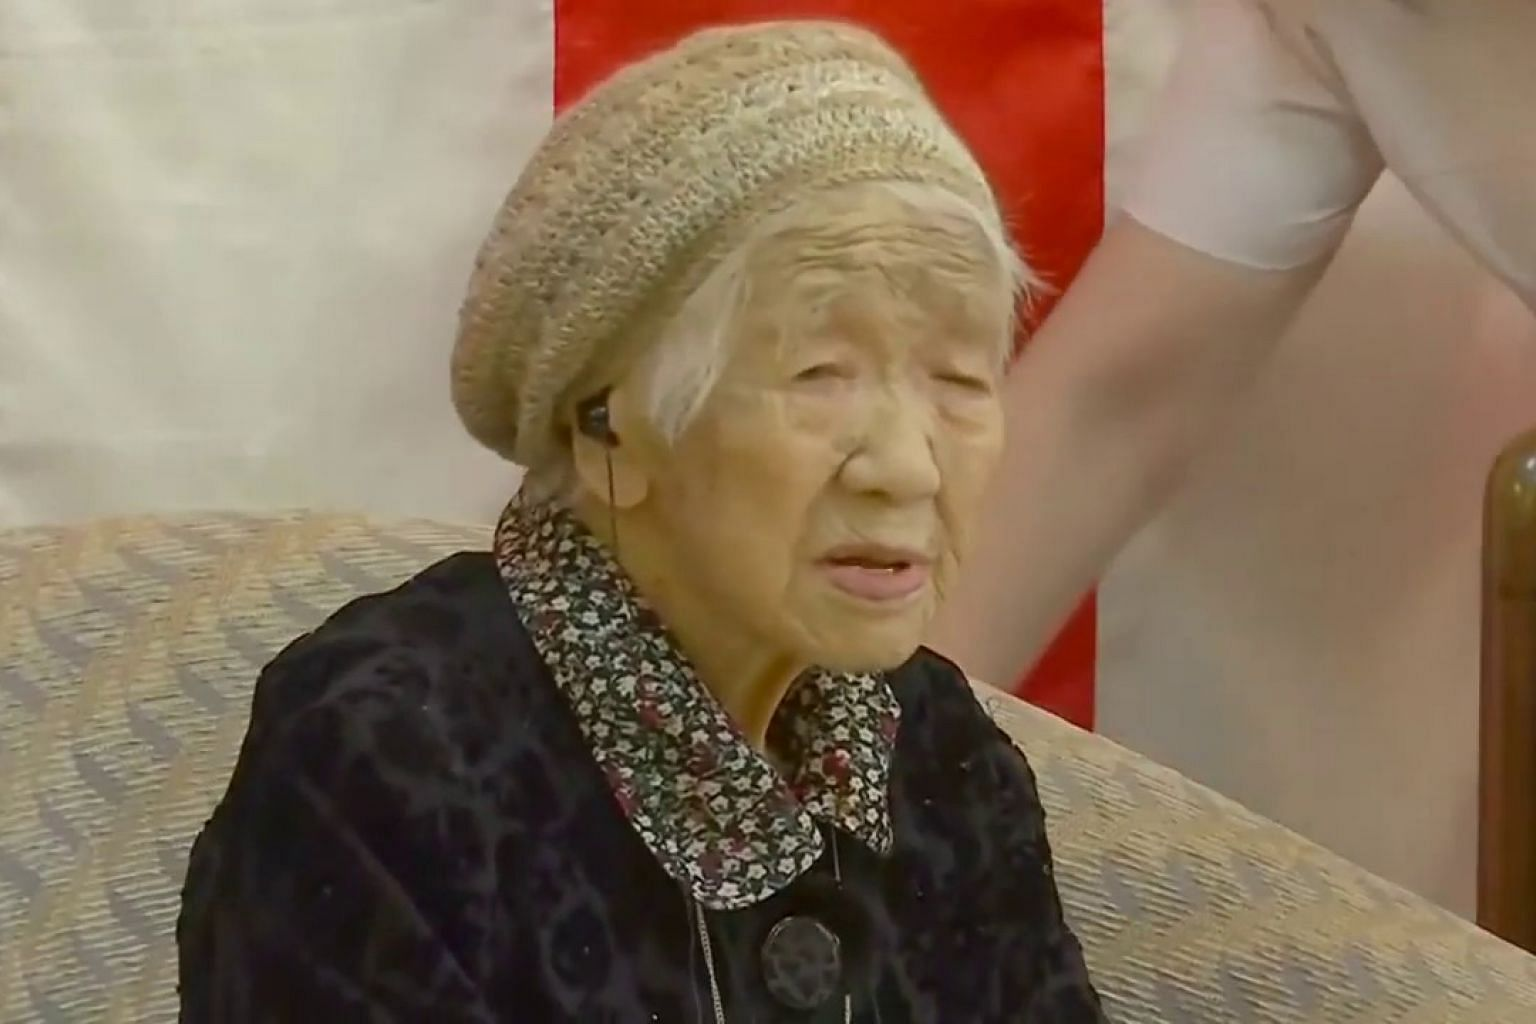 116-year-old Japanese woman named world's oldest person